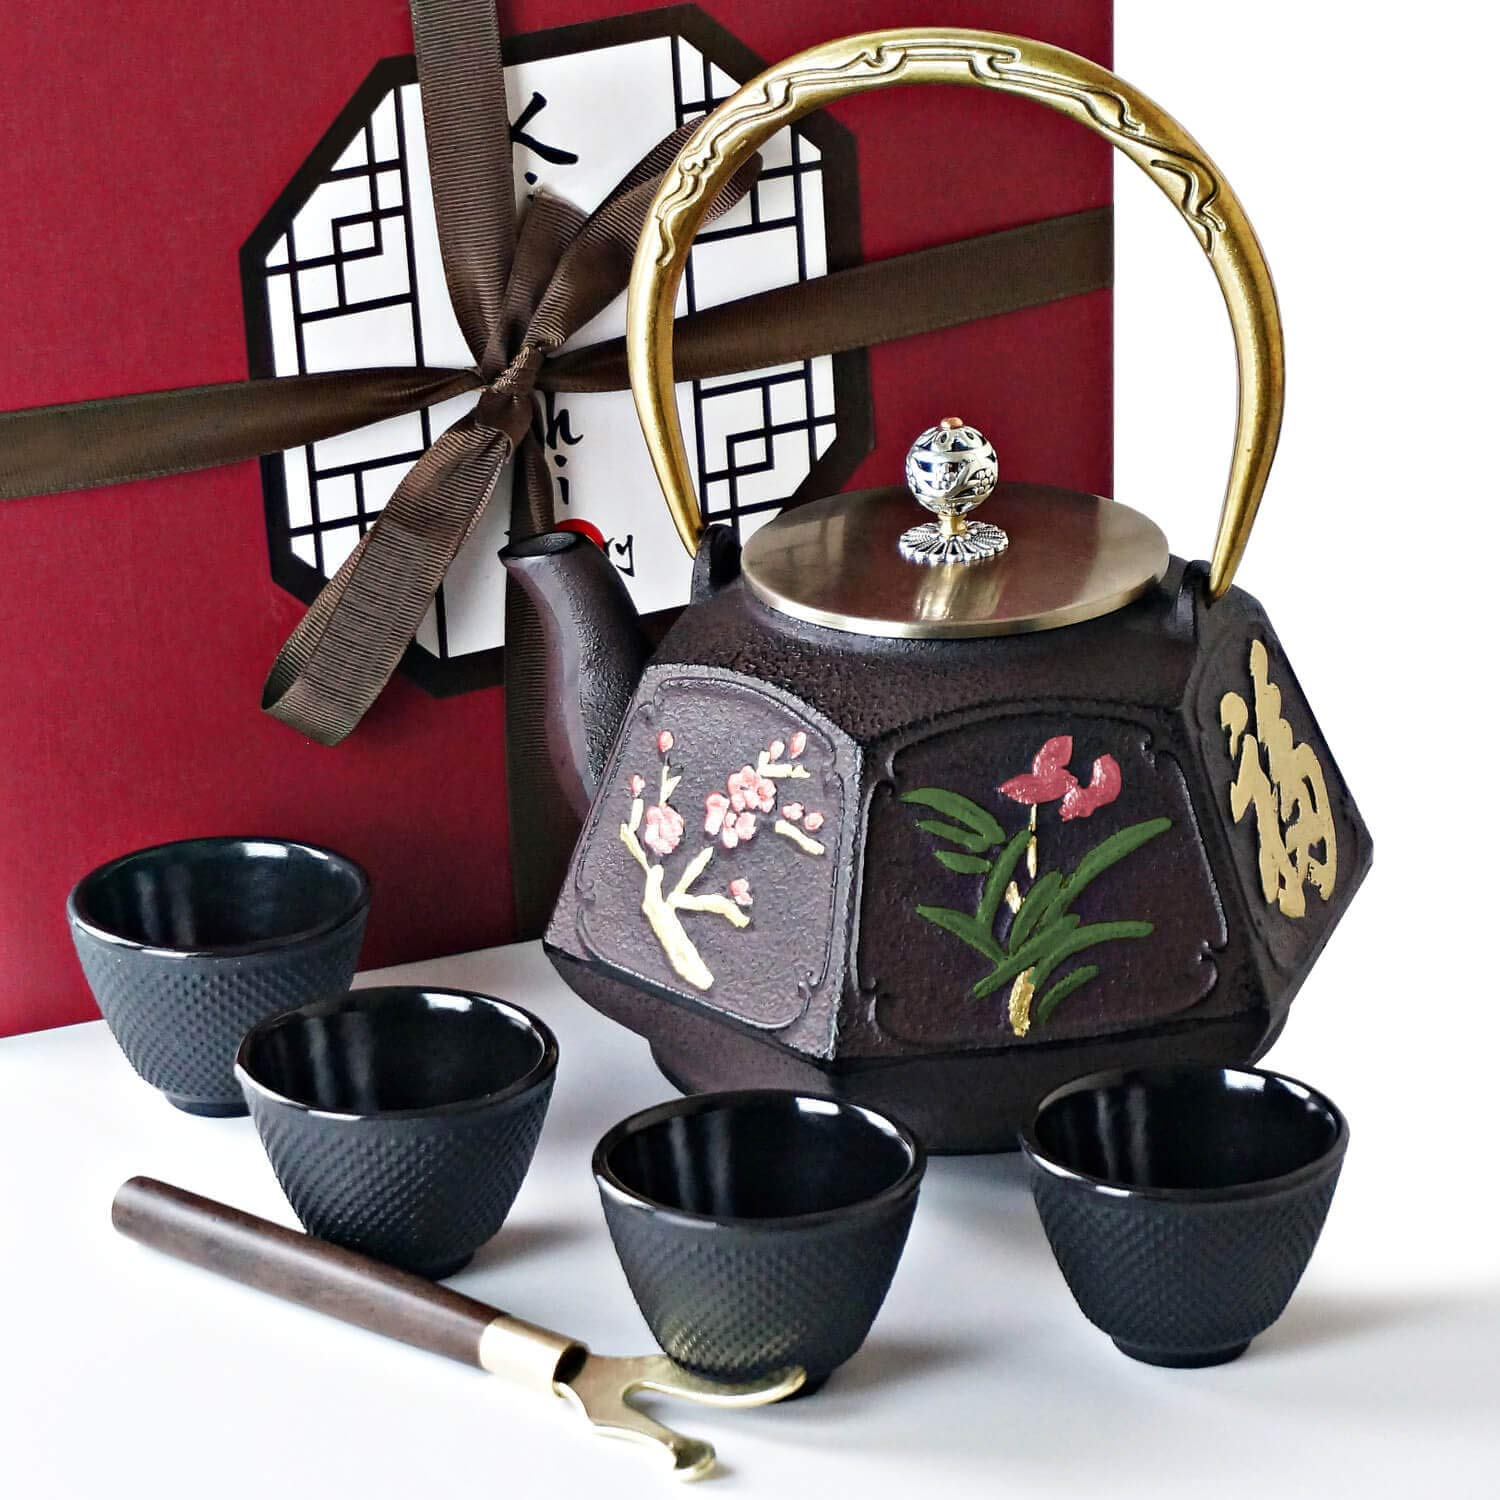 KIYOSHI Luxury Traditional Japanese Cast Iron Tea Set 8 Pieces - Large Teapot (1.3L-44Oz) + 4 Iron Cups + Trivet + Wood Lid Holder - Gift Box - 100% Hand Made - American FDA Approved(Nature Discovery)